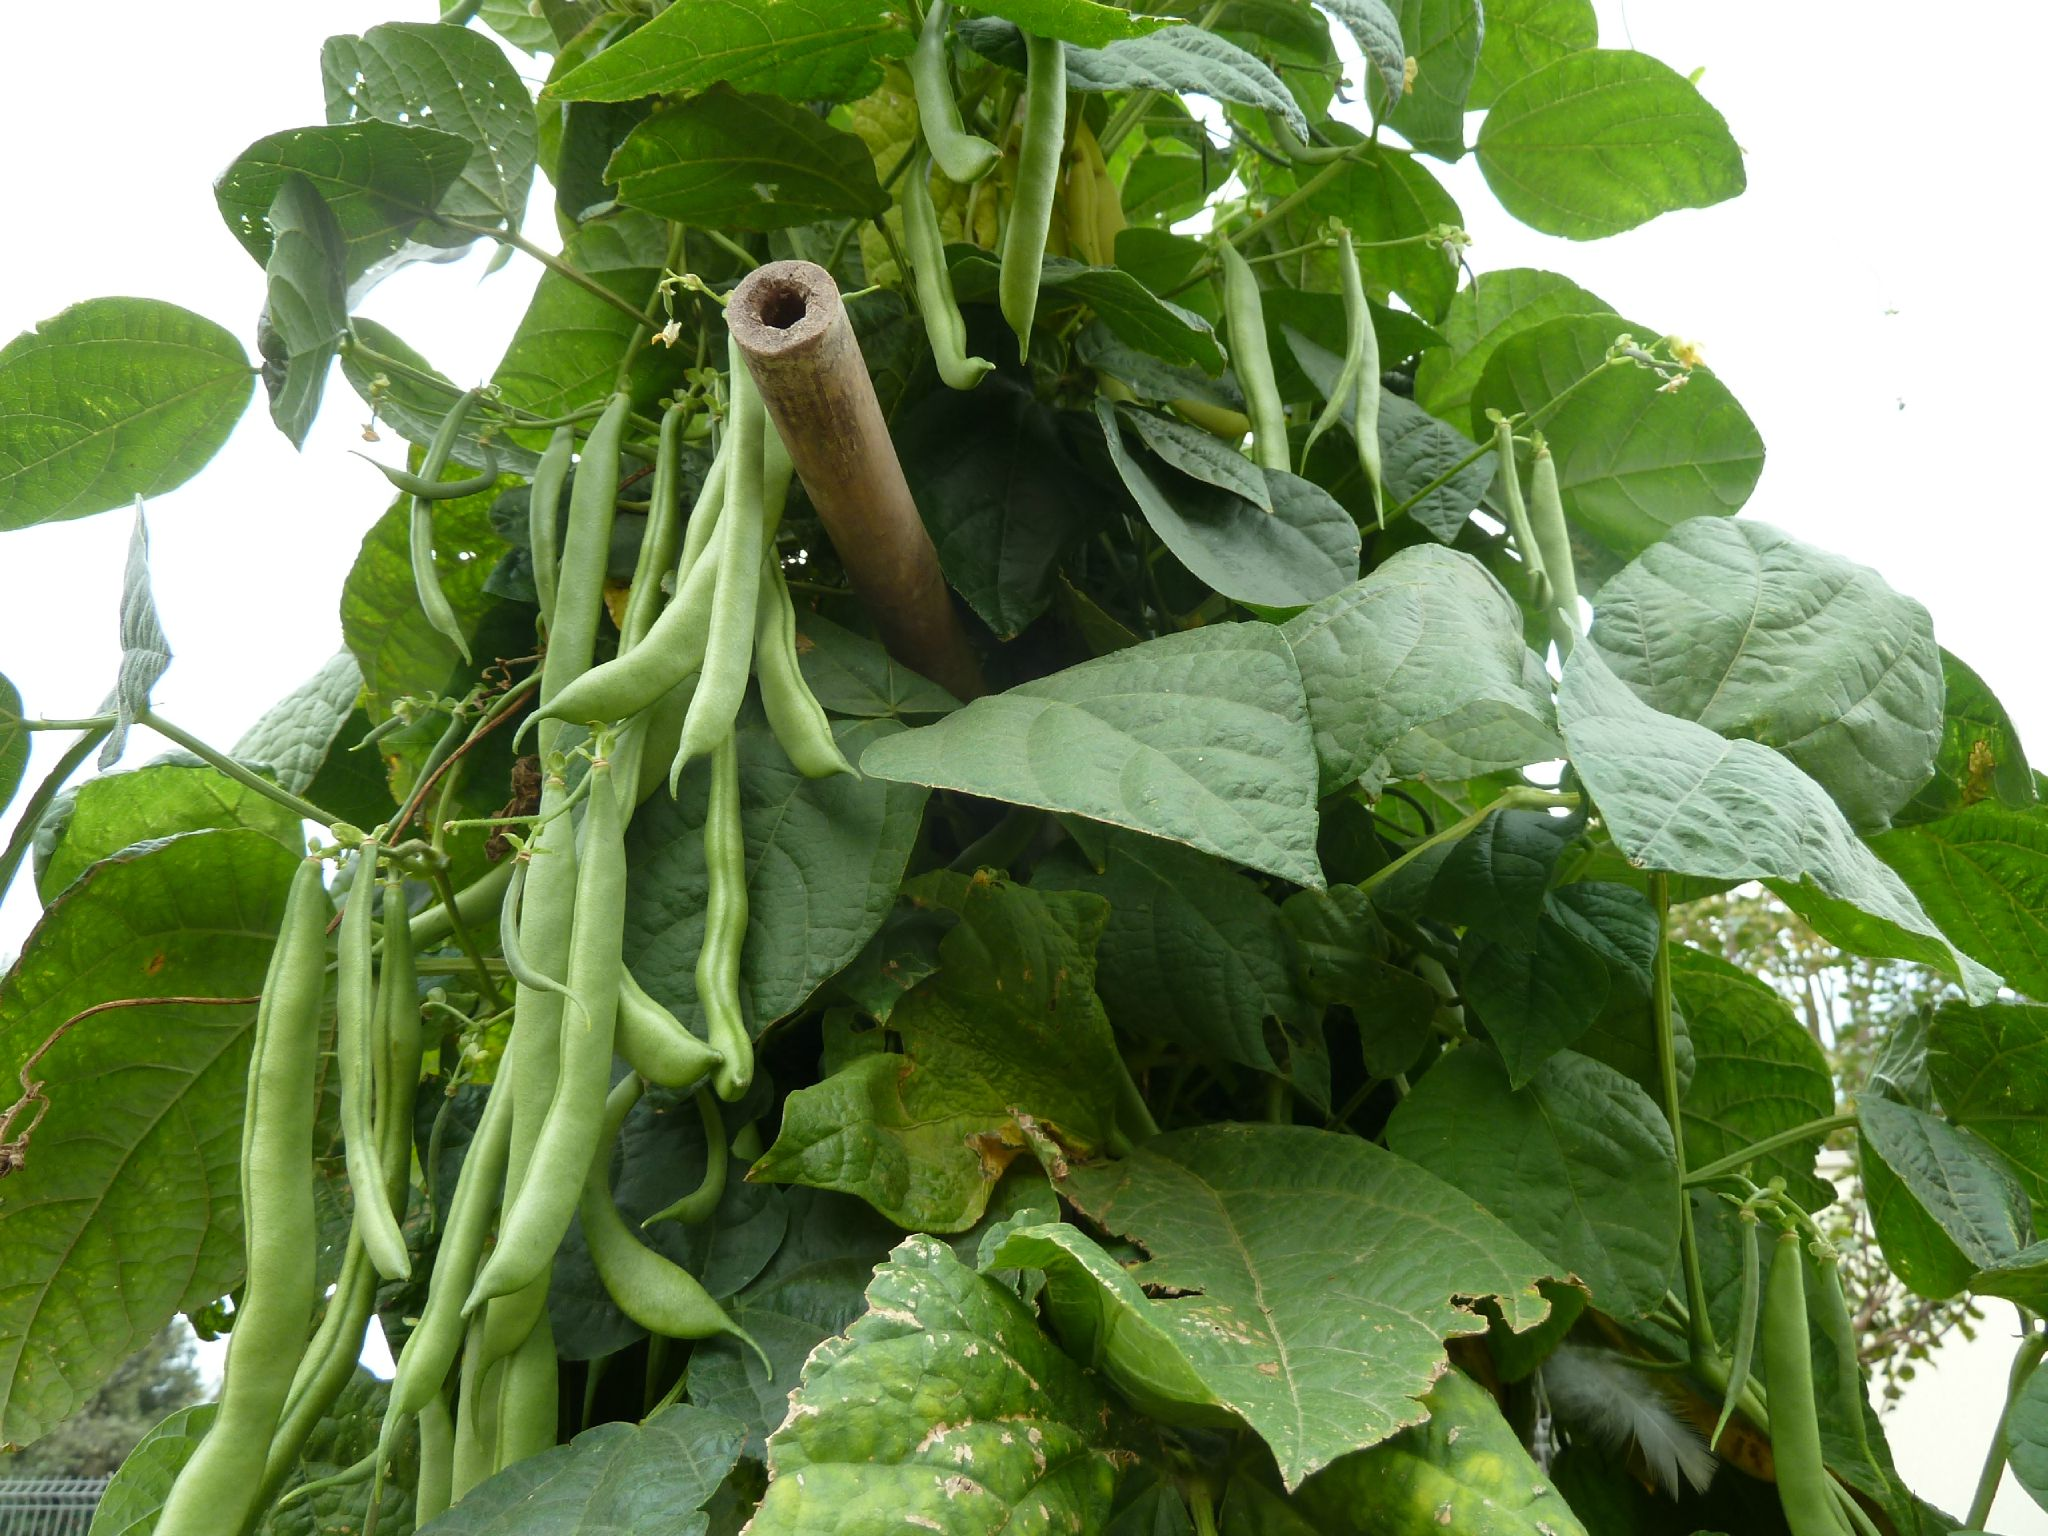 haricots rames - www.passionpotager.canalblog.com